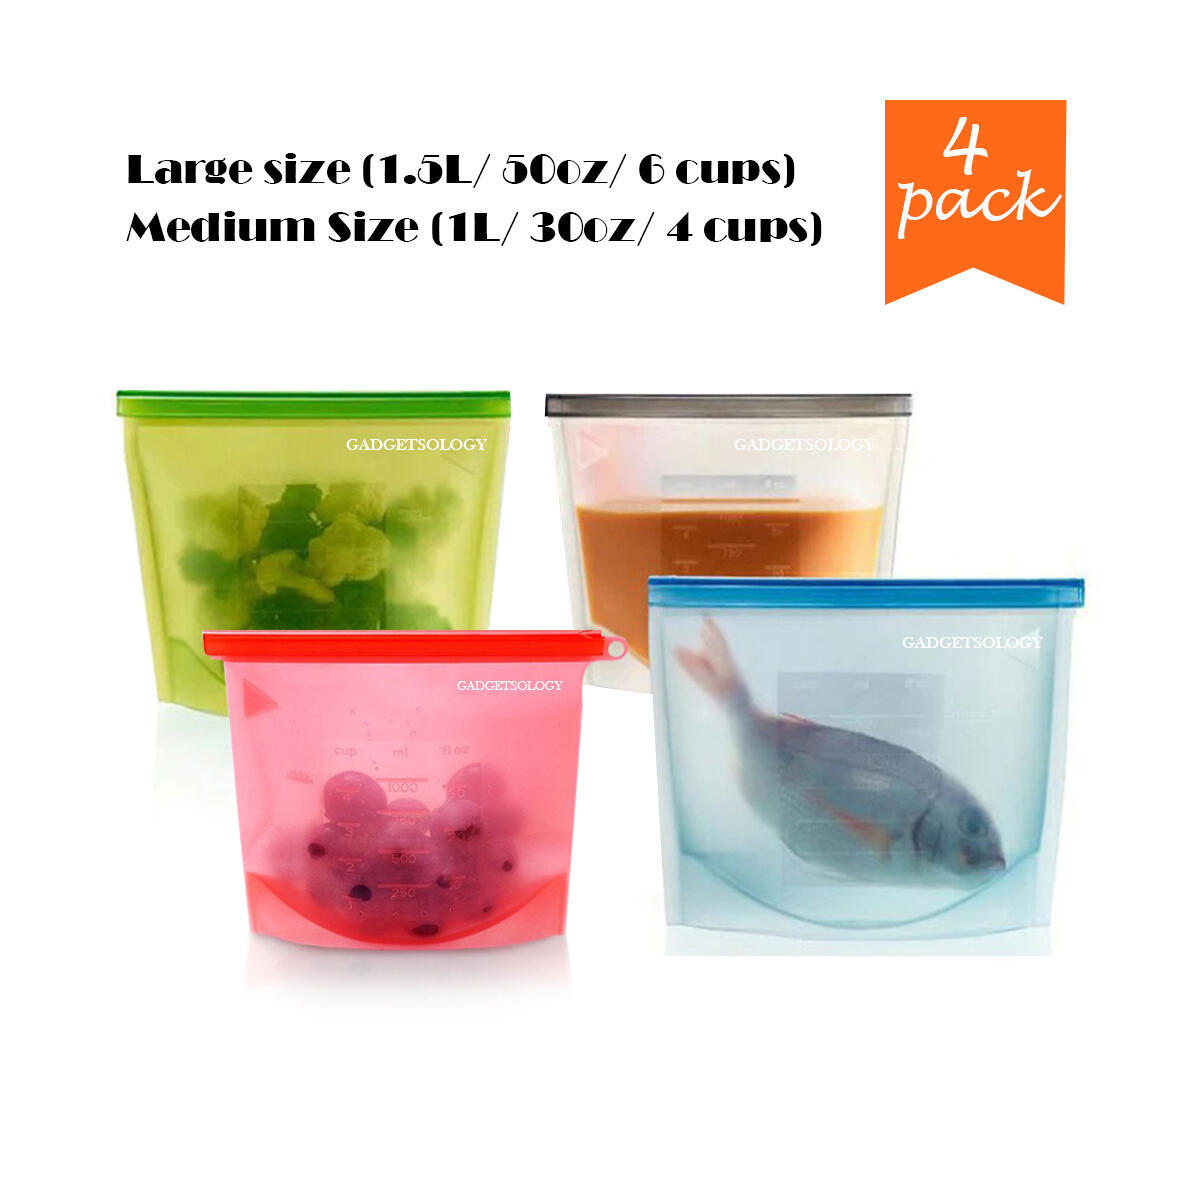 1M + 3L (4PCS) Reusable Silicone Food Bags | Eco-Friendly Meal, Airtight, Leakproof, Ziplock Seal for Hot or Cold Food Storage | Washable